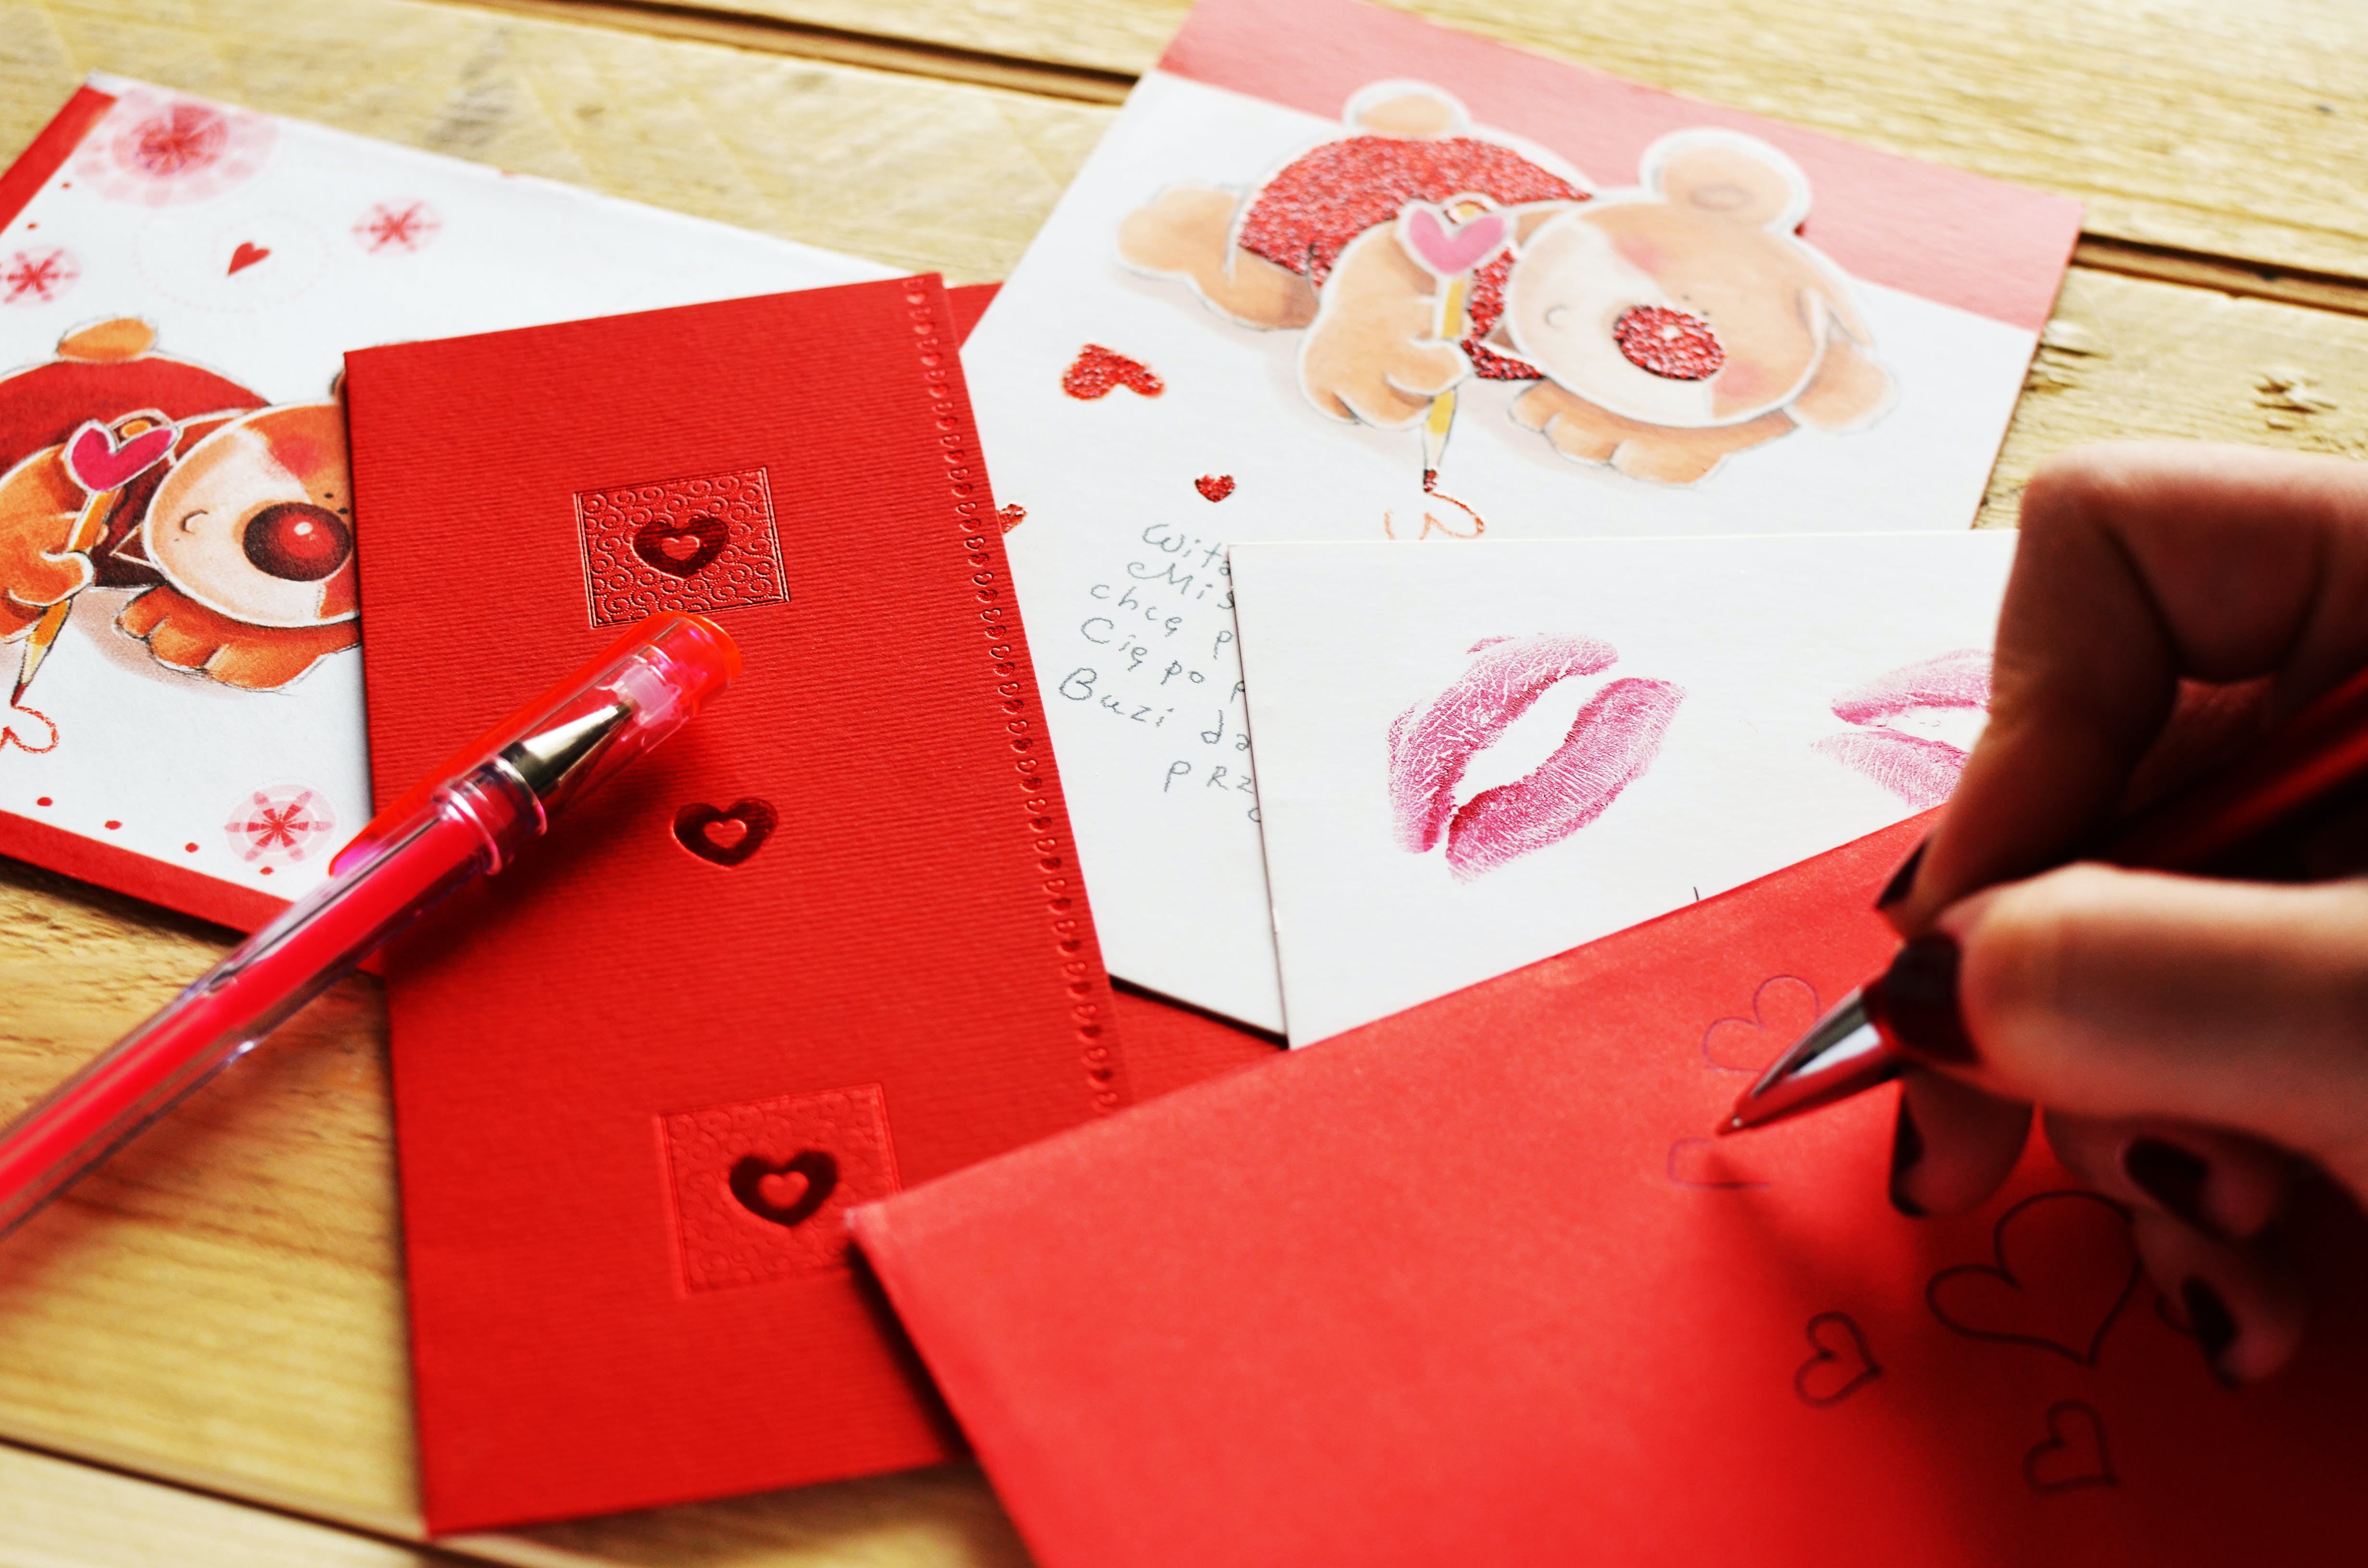 Person Holding Pen While Writing a Heart